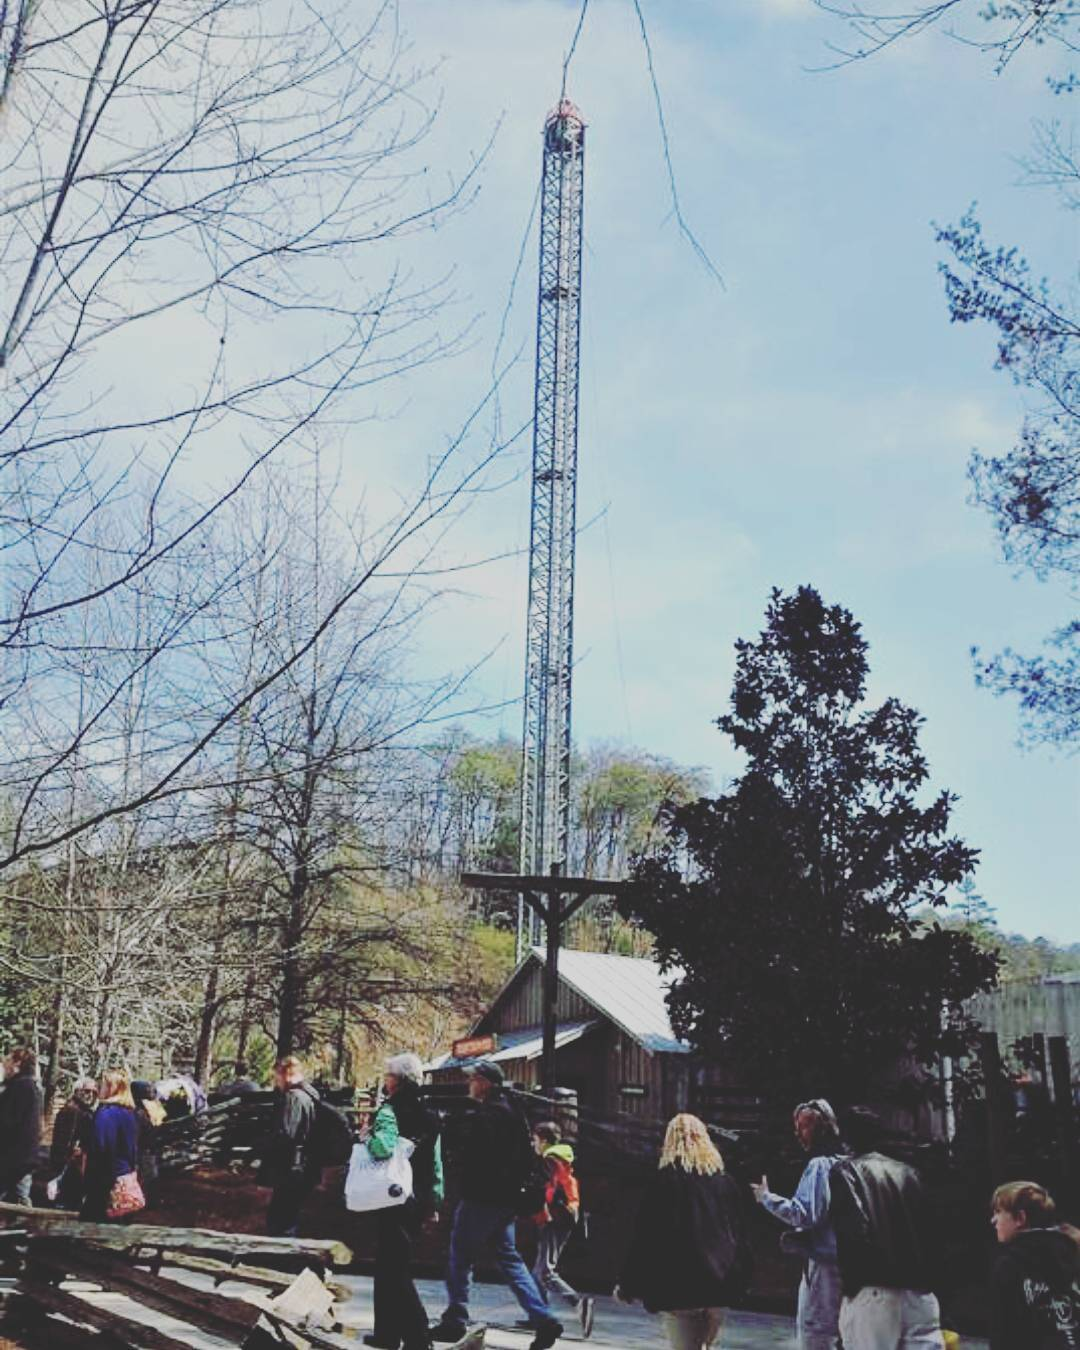 Dollywood Rides - Drop Line Drop Tower - Original Photo